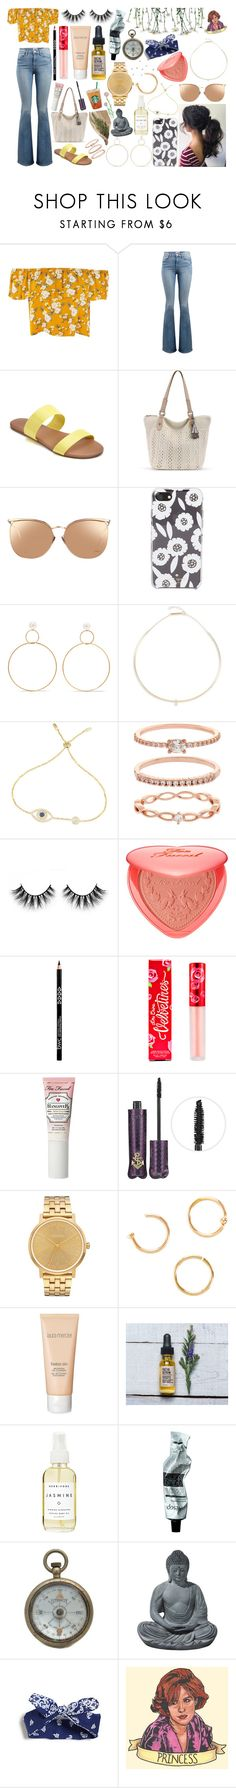 """""""princess"""" by gnarlycarly99 ❤ liked on Polyvore featuring Frame, LC Lauren Conrad, Linda Farrow, Kate Spade, Natasha Schweitzer, ZoÃ« Chicco, Accessorize, Too Faced Cosmetics, Lime Crime and tarte"""